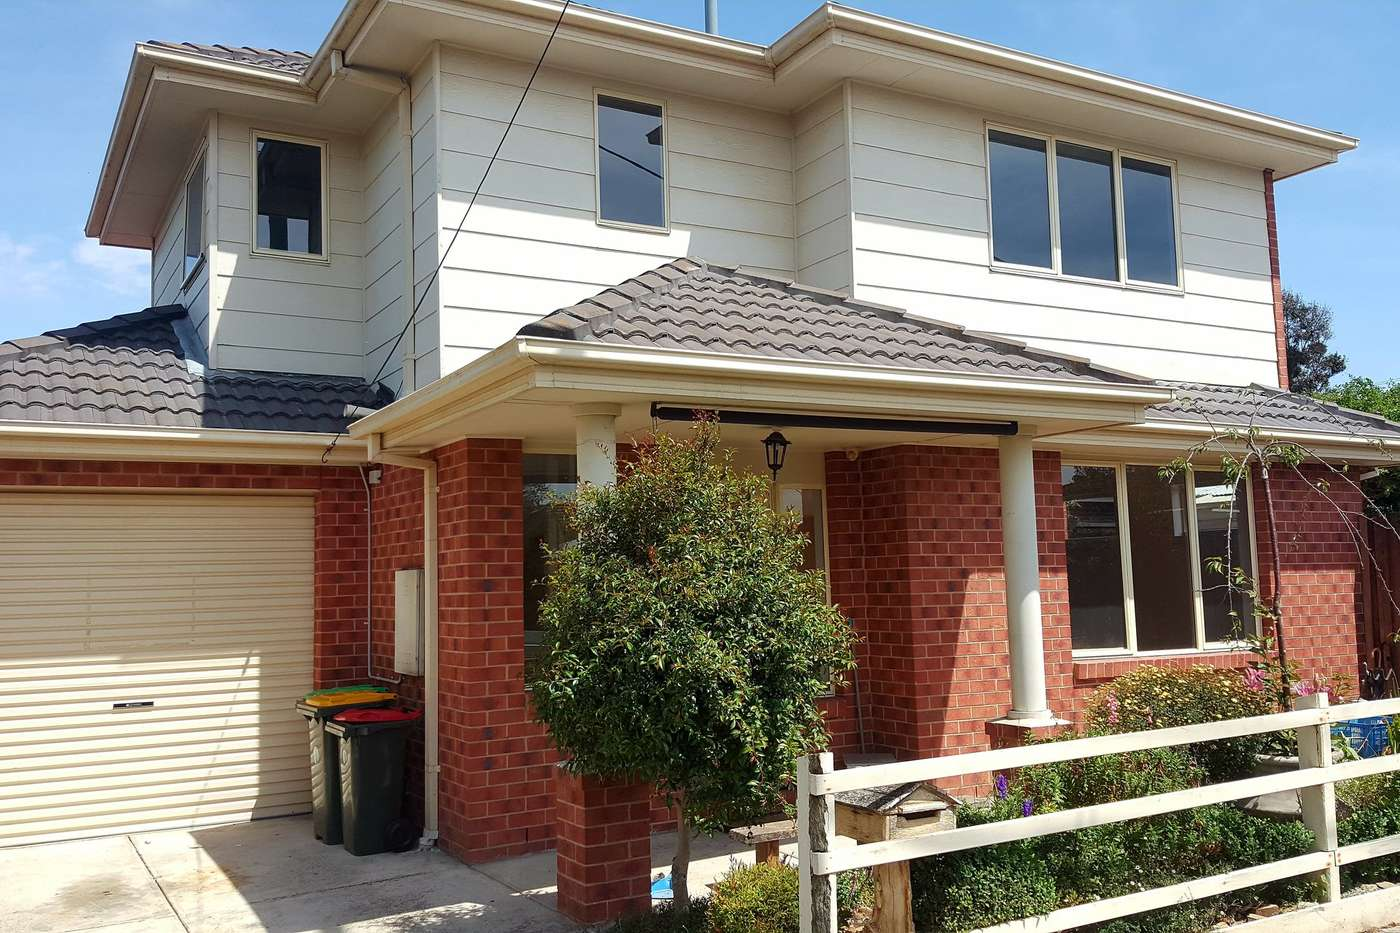 Main view of Homely house listing, 38 Clifton Grove, Coburg, VIC 3058